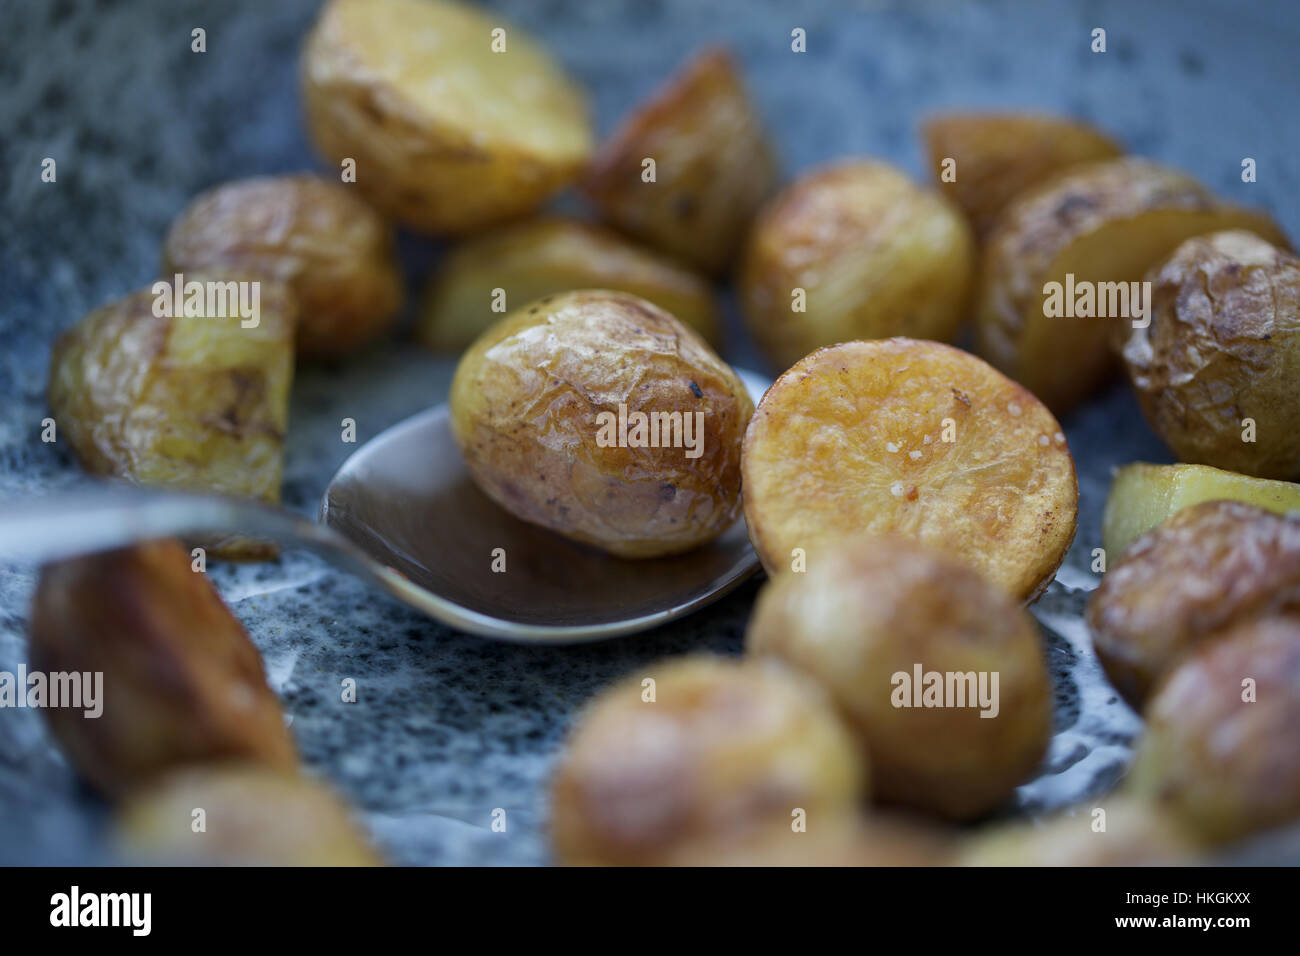 fried baby potato. spoon, unhealthy, meal, food. - Stock Image